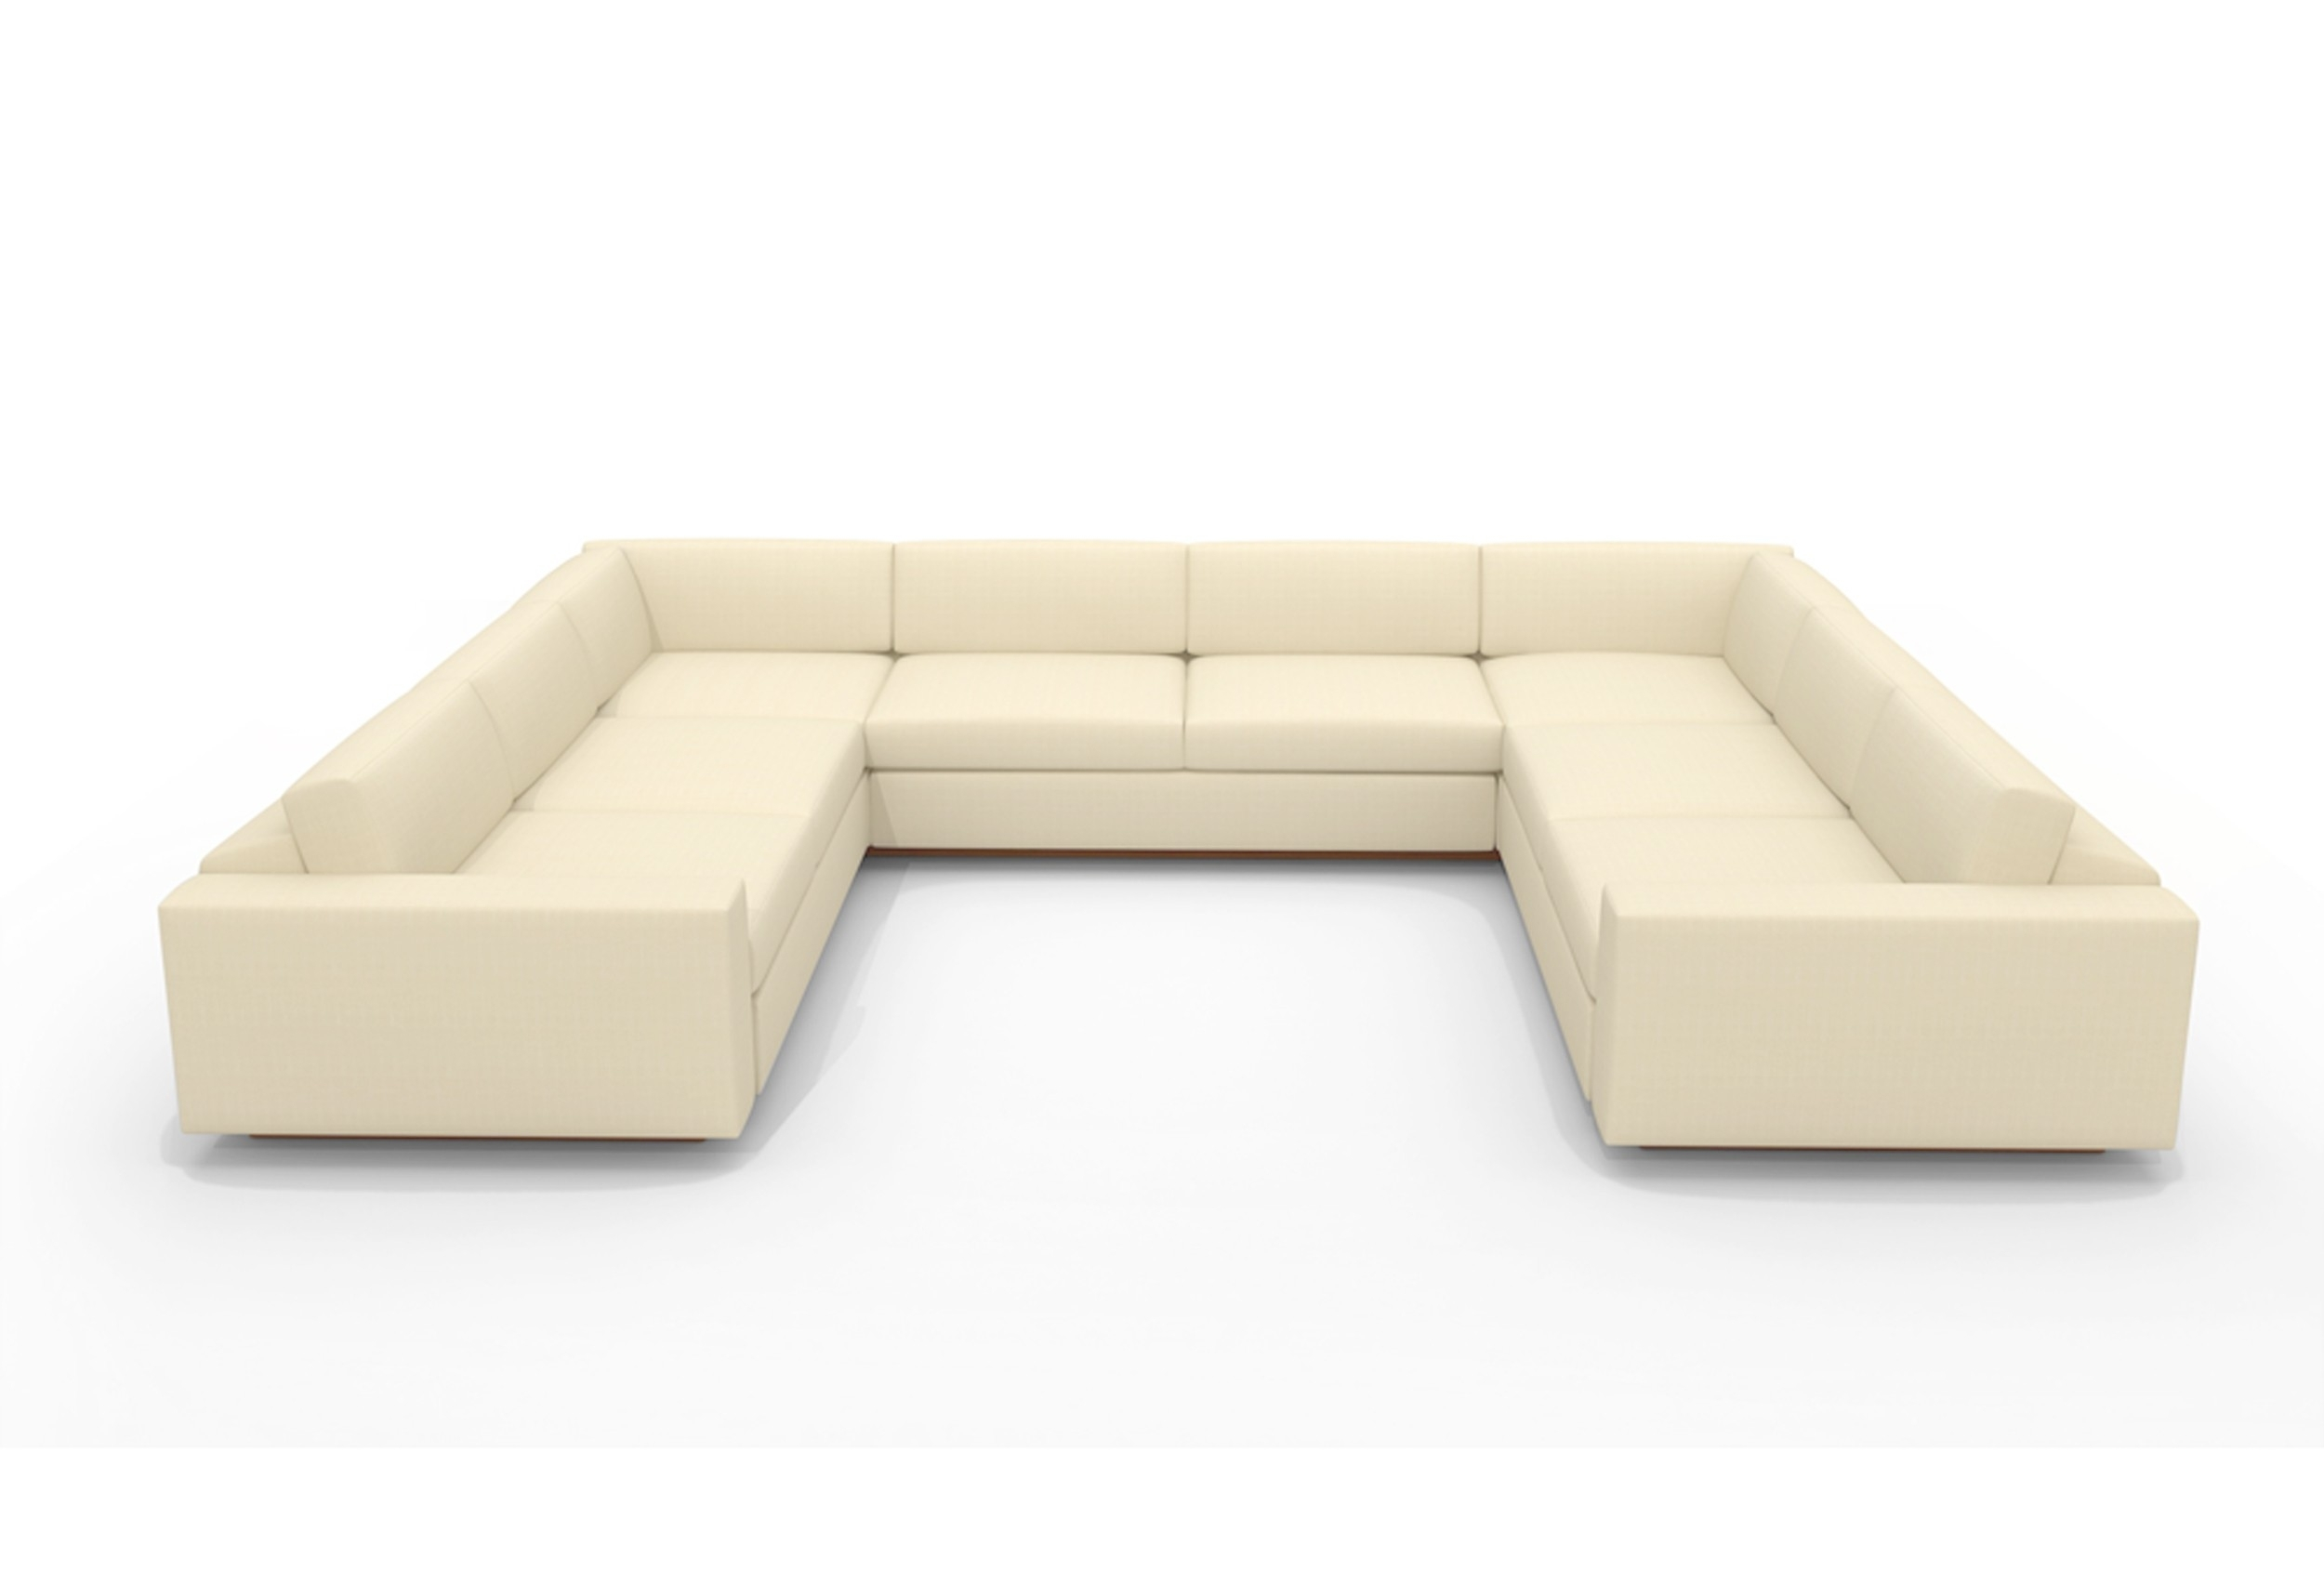 U Shaped White Leather Sectional Sofa With Back And Arm Of Marvelous Throughout U Shaped Leather Sectional Sofas (Photo 6 of 10)